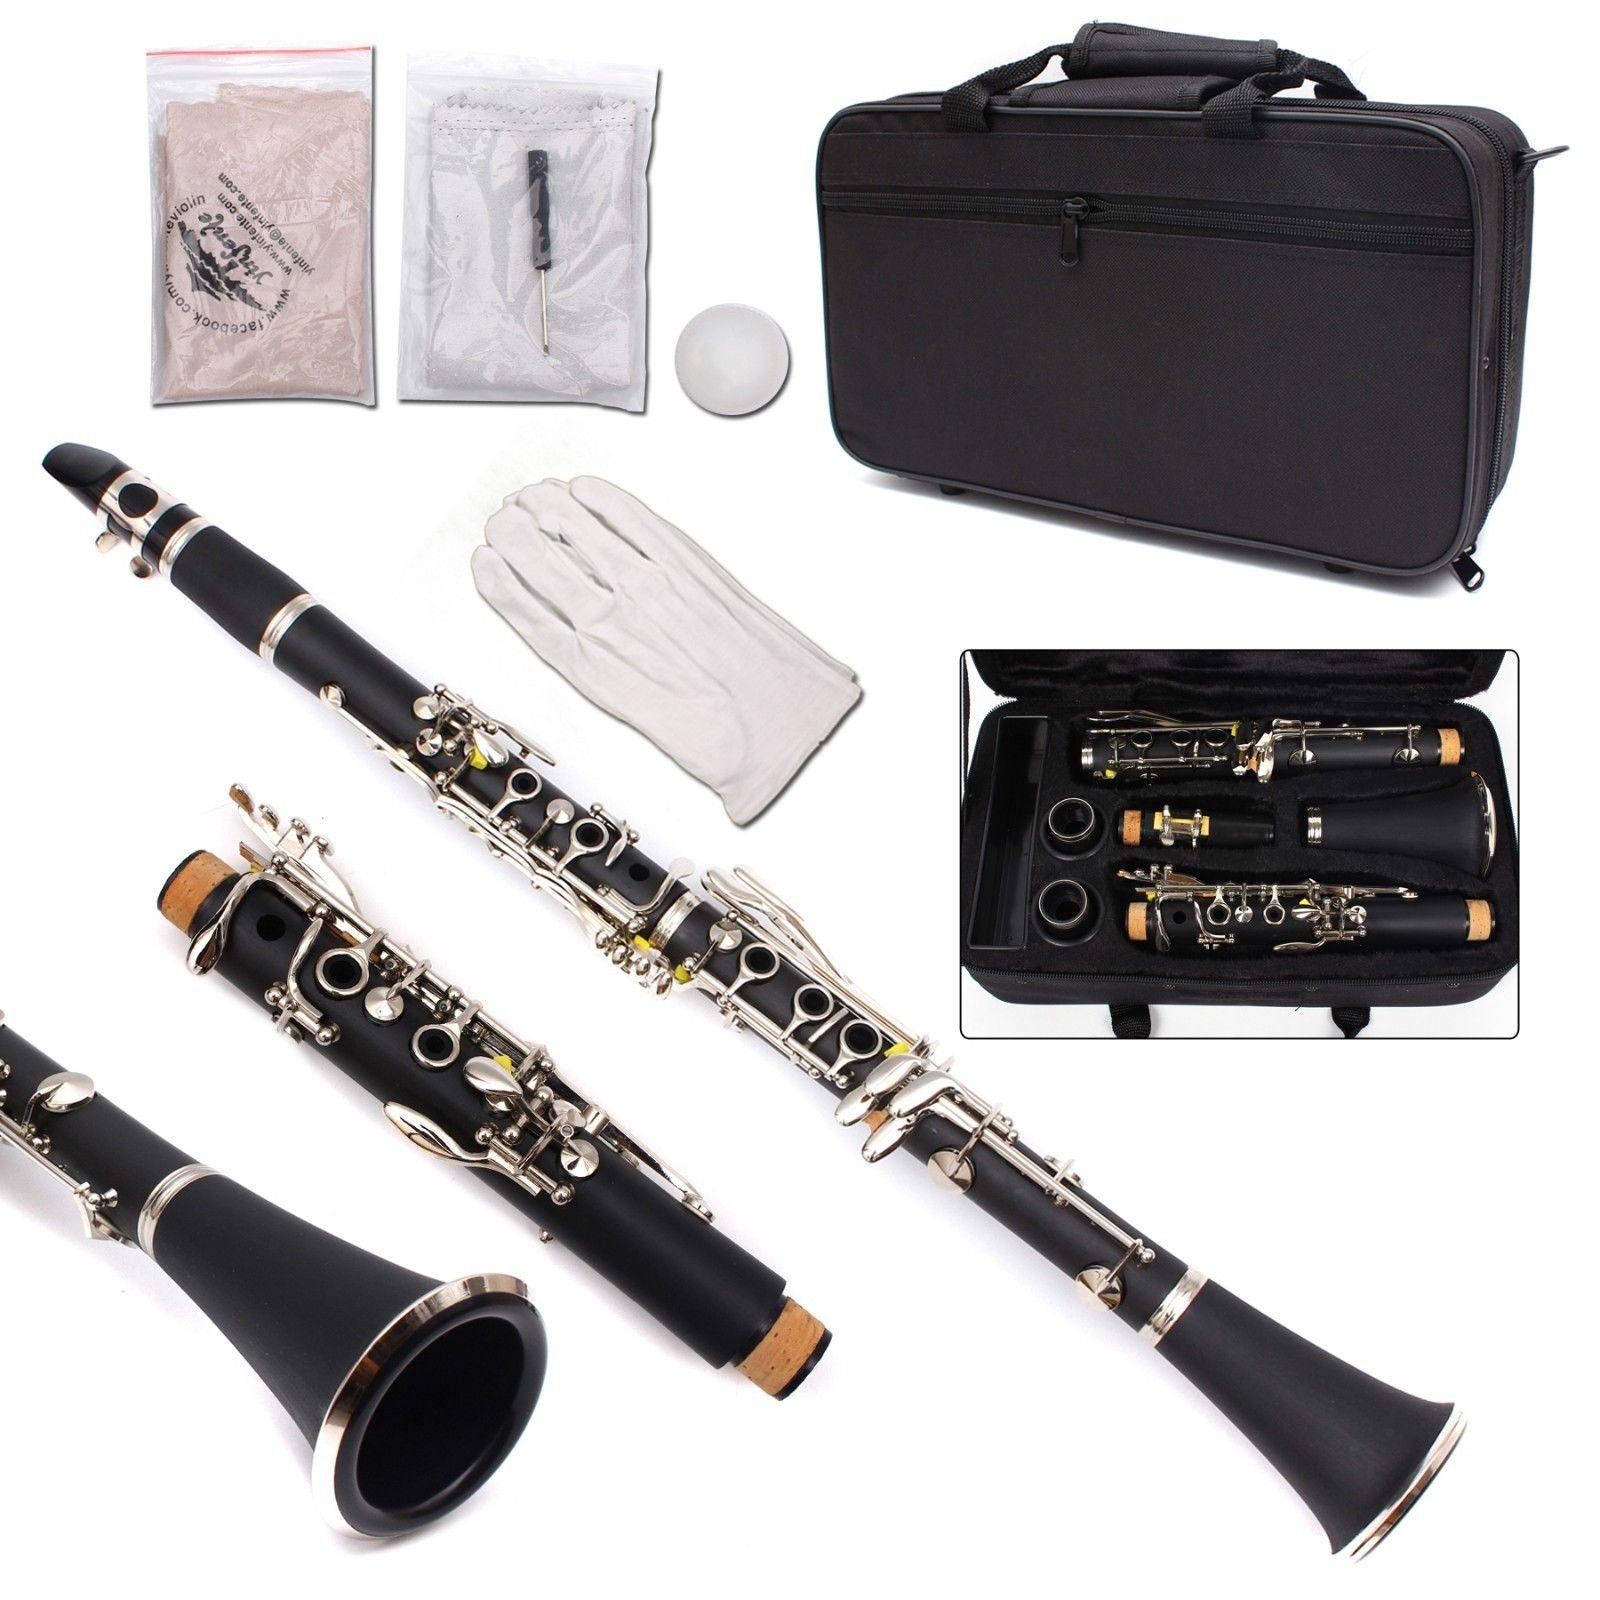 New Professional Clarinet Ebonite Wood Nickel Plated Key Bb Key 17 key Case #7 silver nickel plated double french horn f bb 4 keys with case